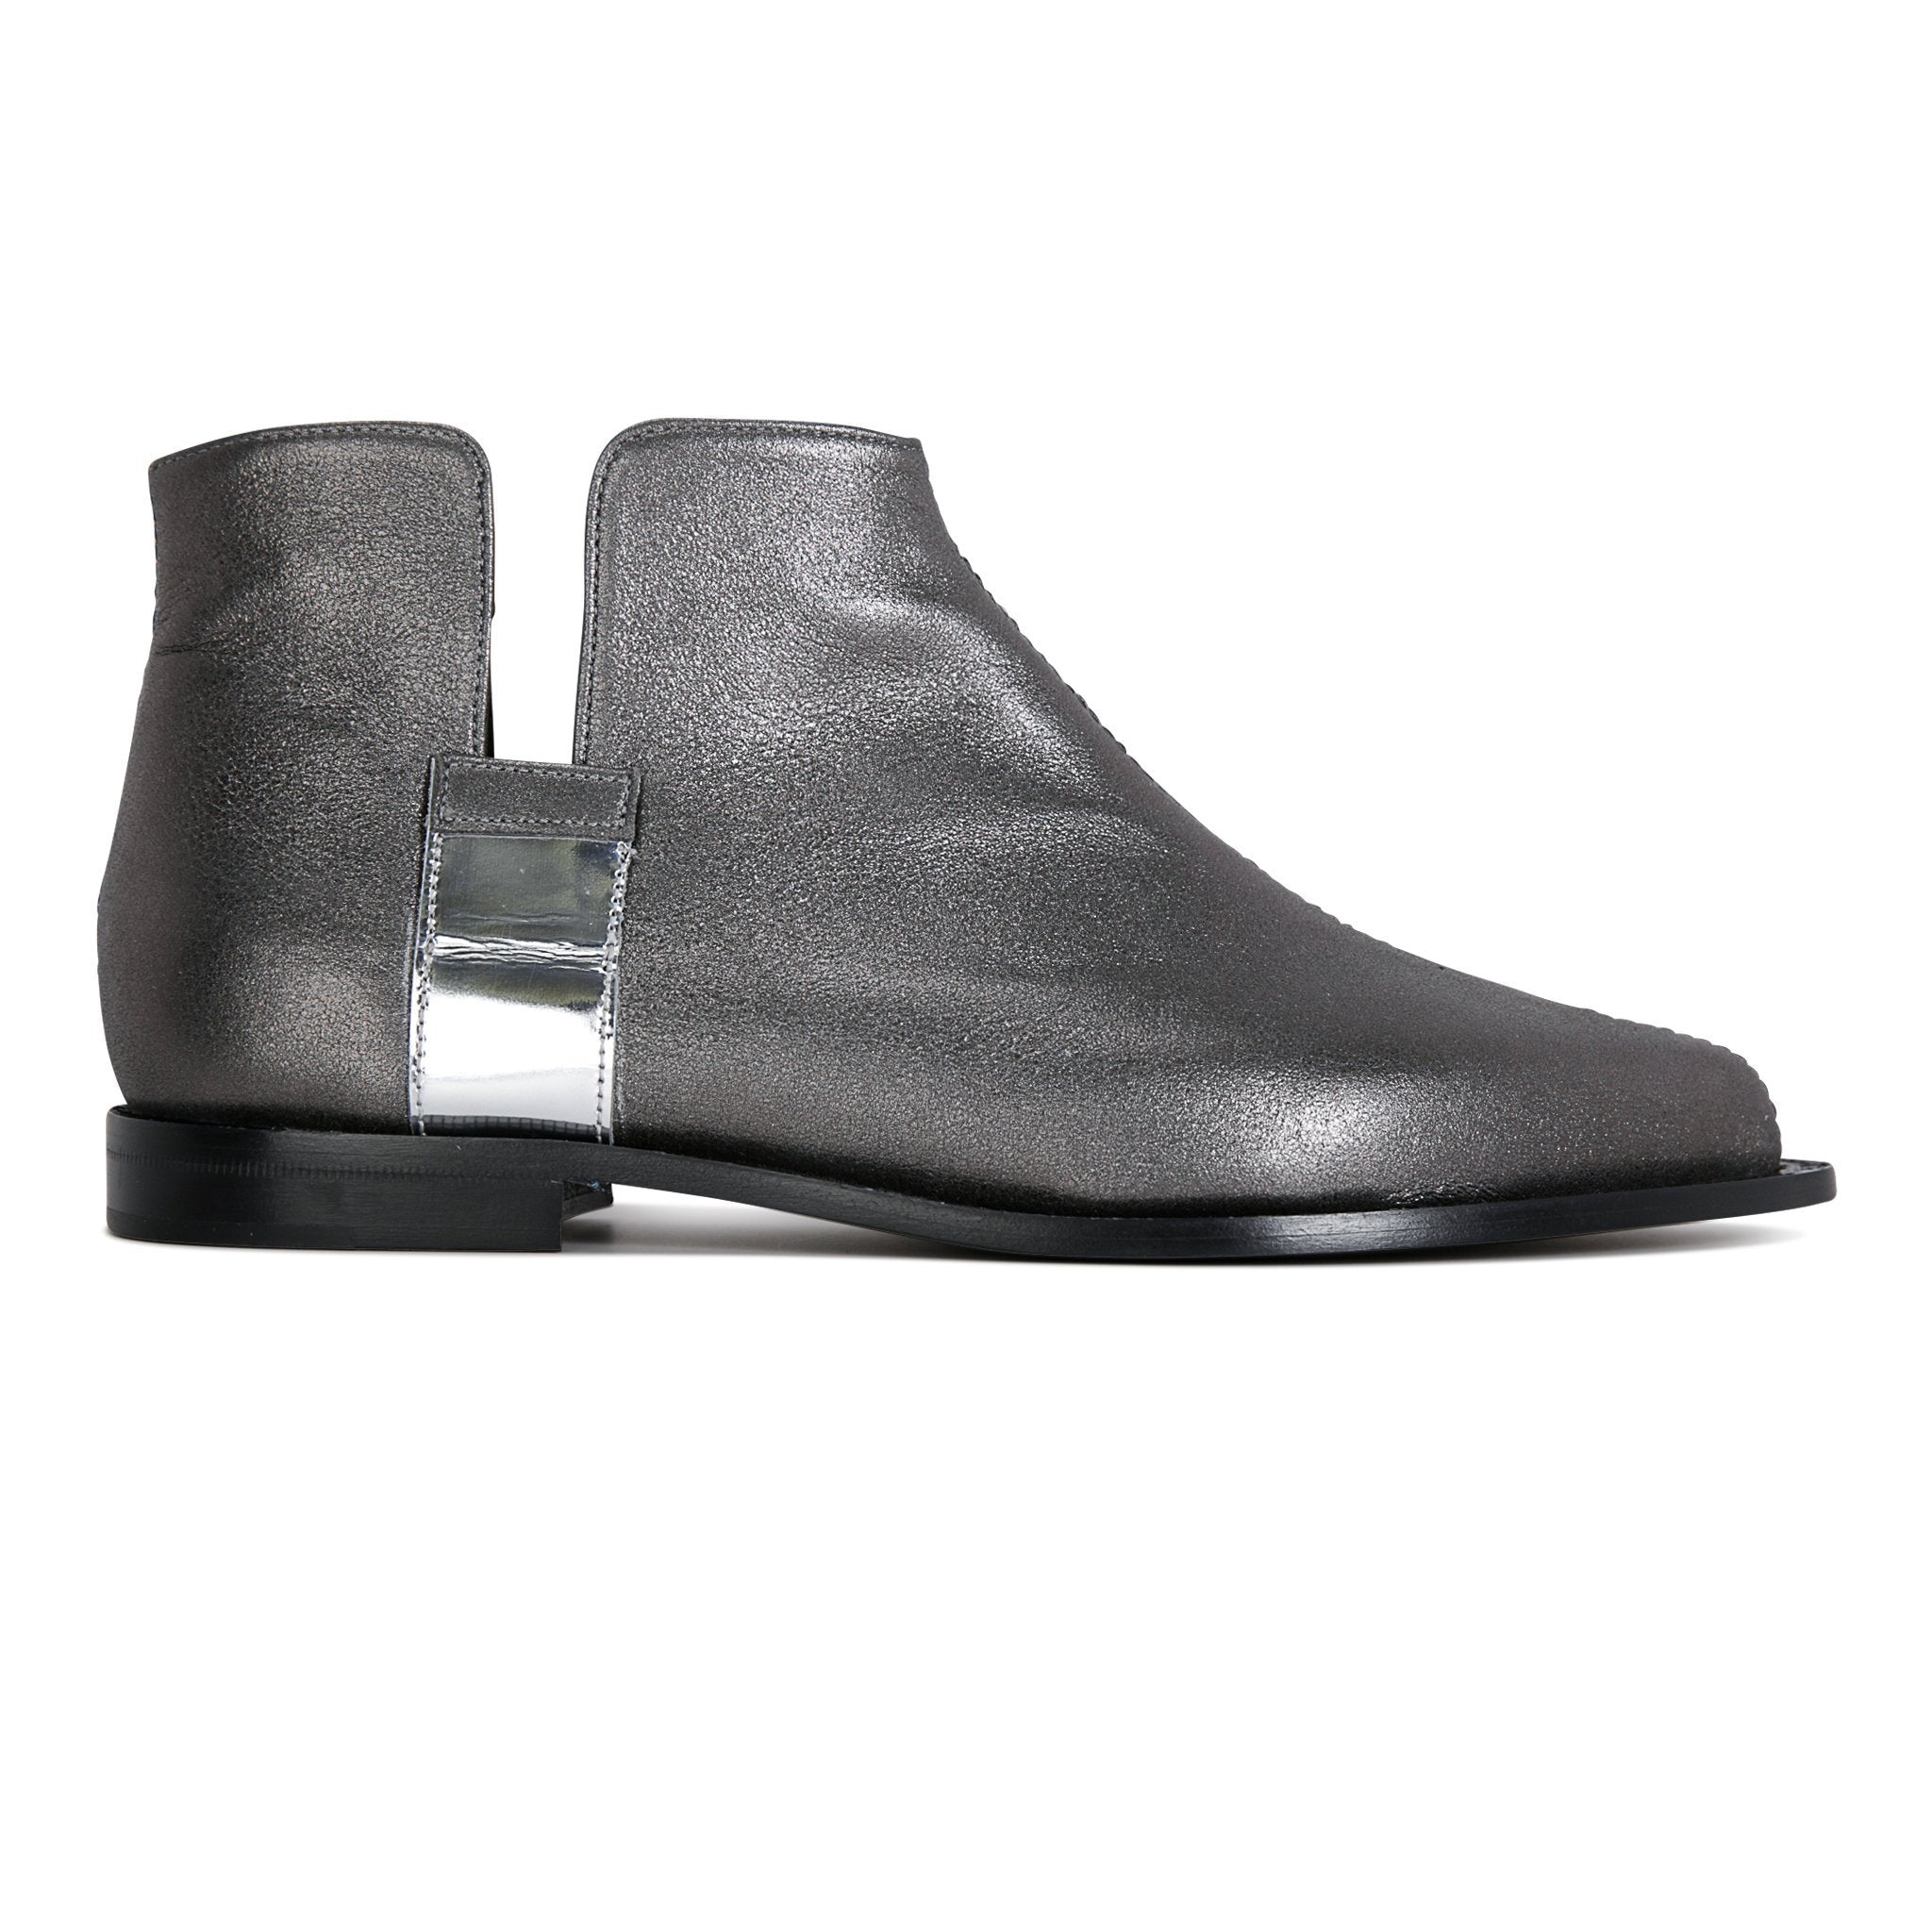 RAVELLO - Burma Anthracite + Metallic Argento, VIAJIYU - Women's Hand Made Sustainable Luxury Shoes. Made in Italy. Made to Order.